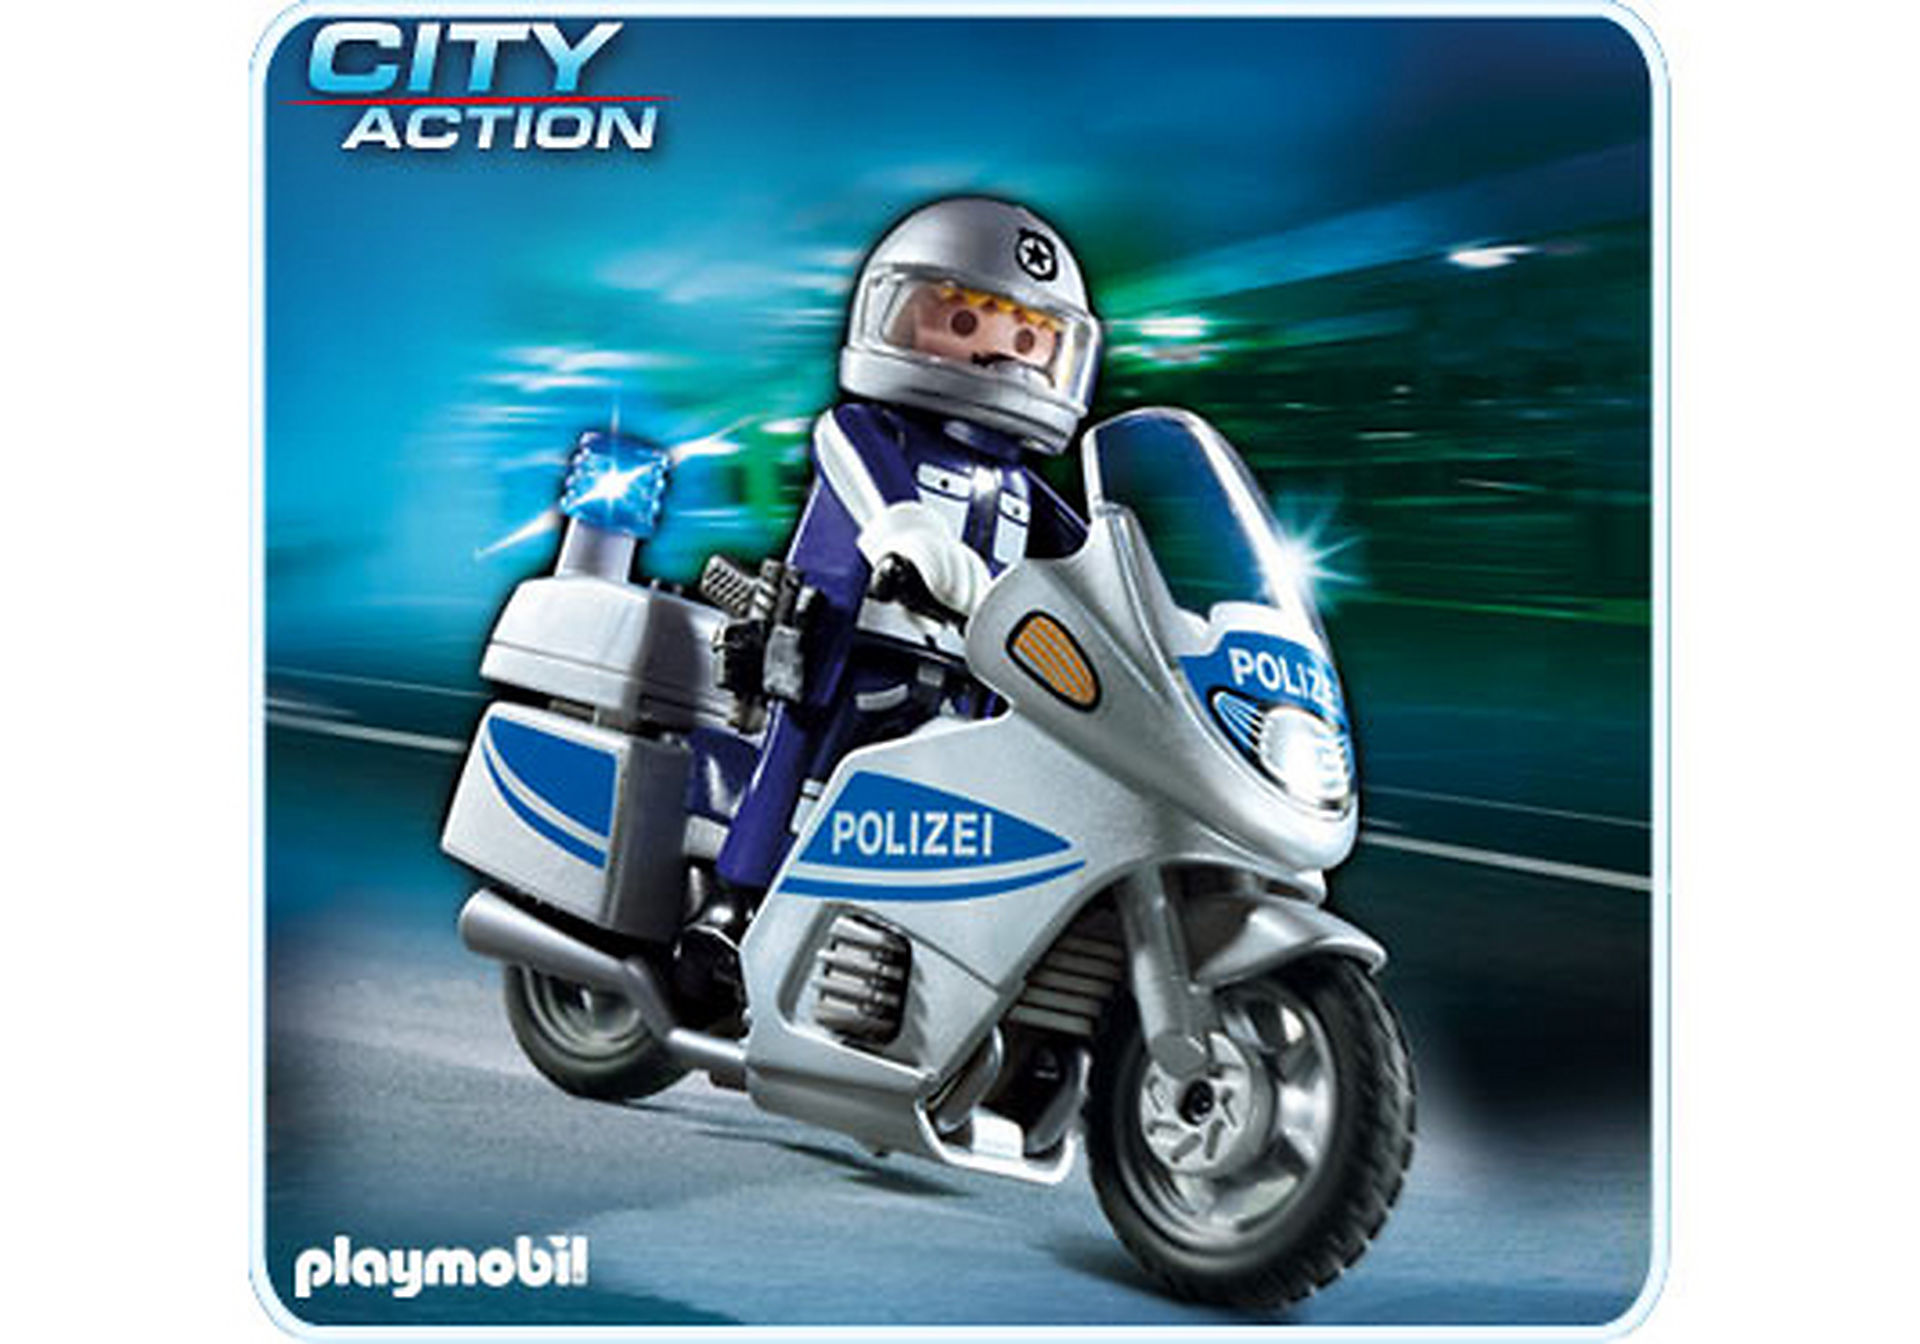 http://media.playmobil.com/i/playmobil/5180-A_product_detail/Polizeimotorrad mit Blinklicht